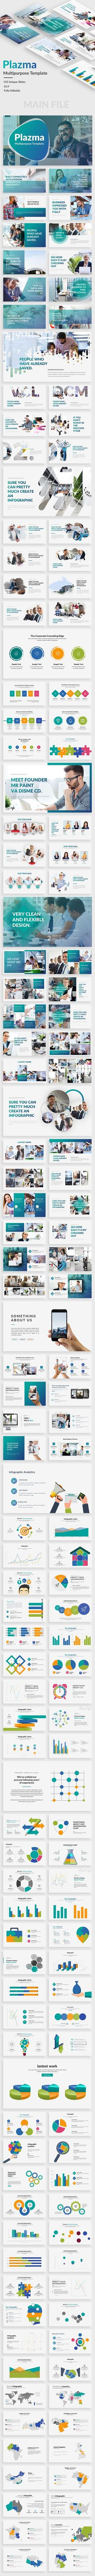 Plazma - Multipurpose Premium Powerpoint Template - 153 Unique Slides